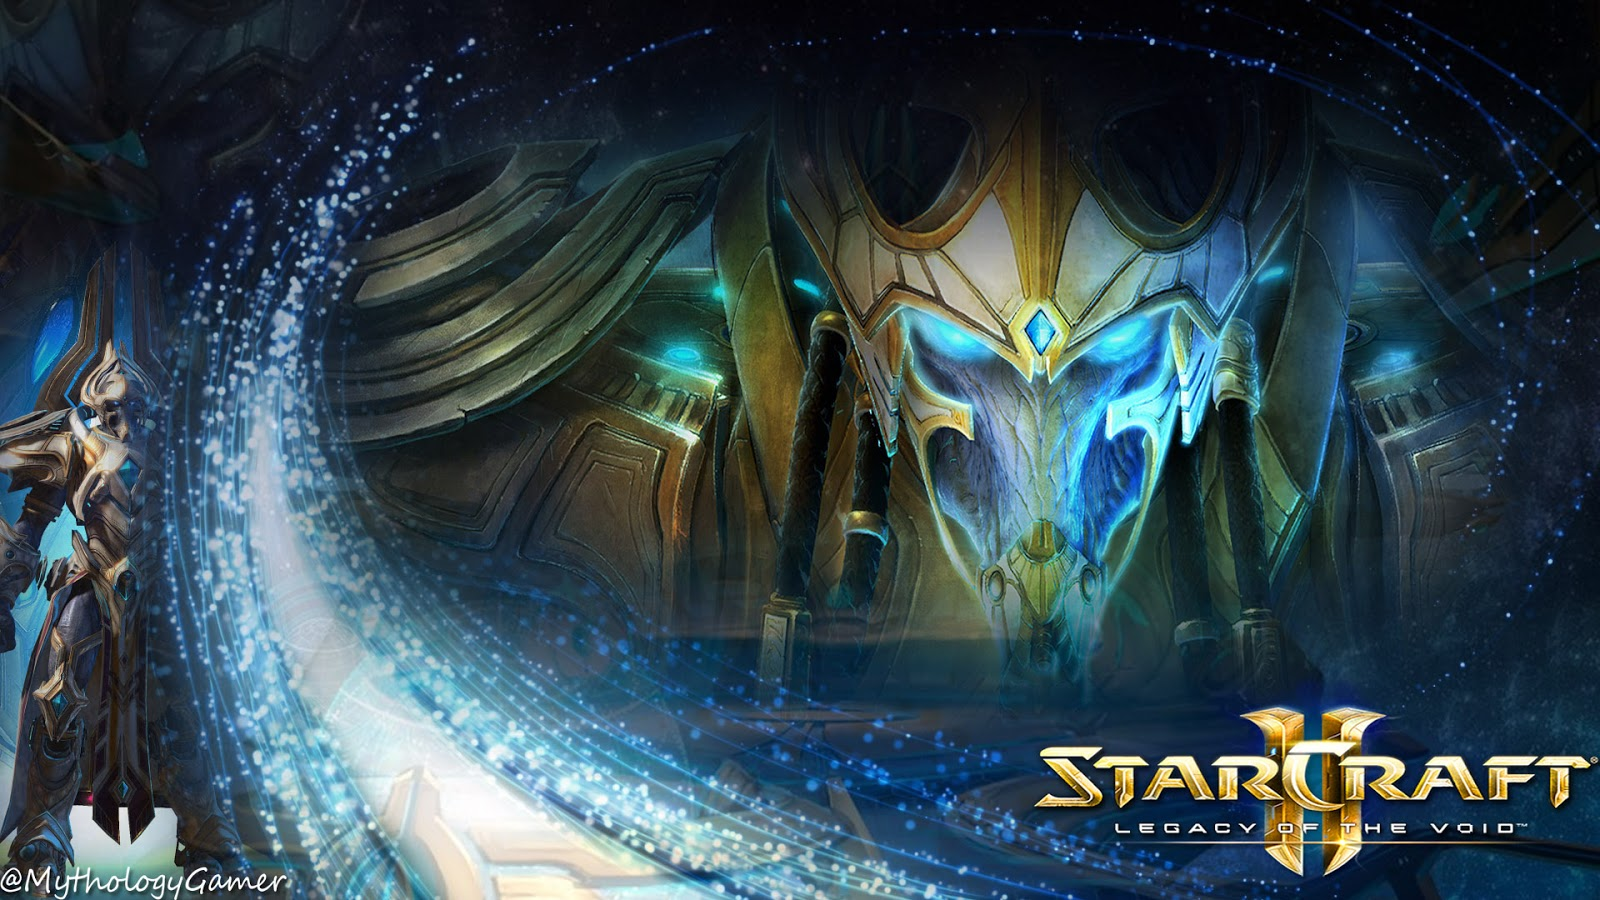 hd wallpapers starcraft 2 legacy of the void hd wallpapers